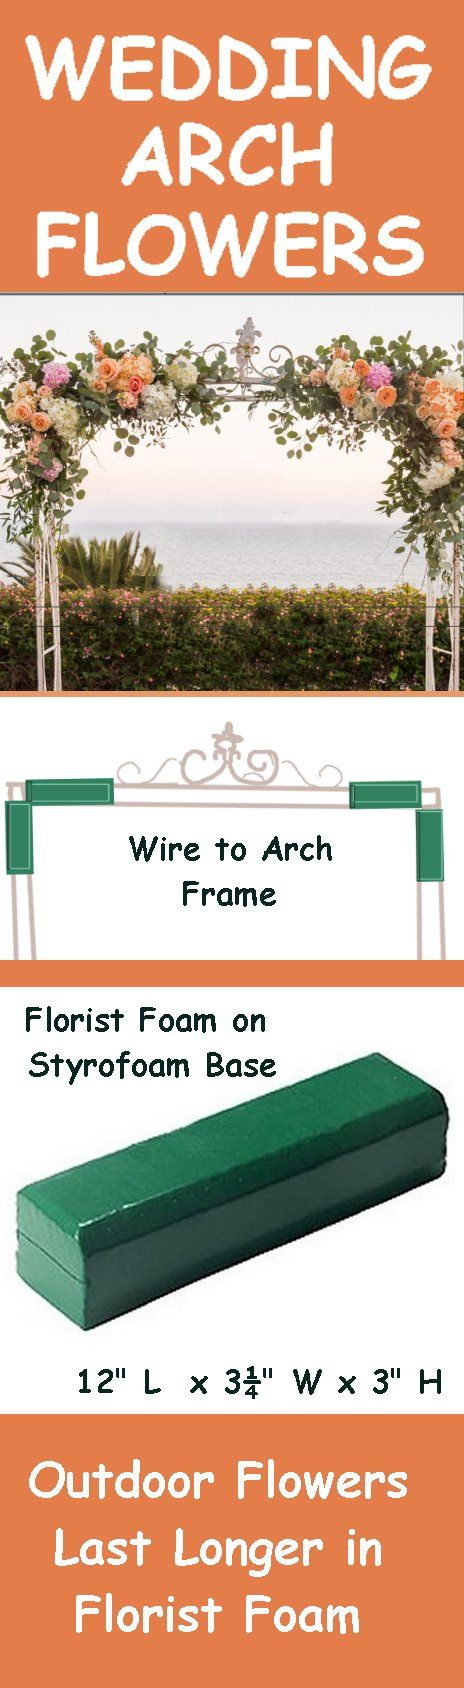 Florist Design Secrets - Easy Wedding Flower Tutorials and Ideas  Learn how to make bridal bouquets, wedding corsages, groom boutonnieres, reception centerpieces and church decorations.  Buy wholesale flowers and discount florist supplies.